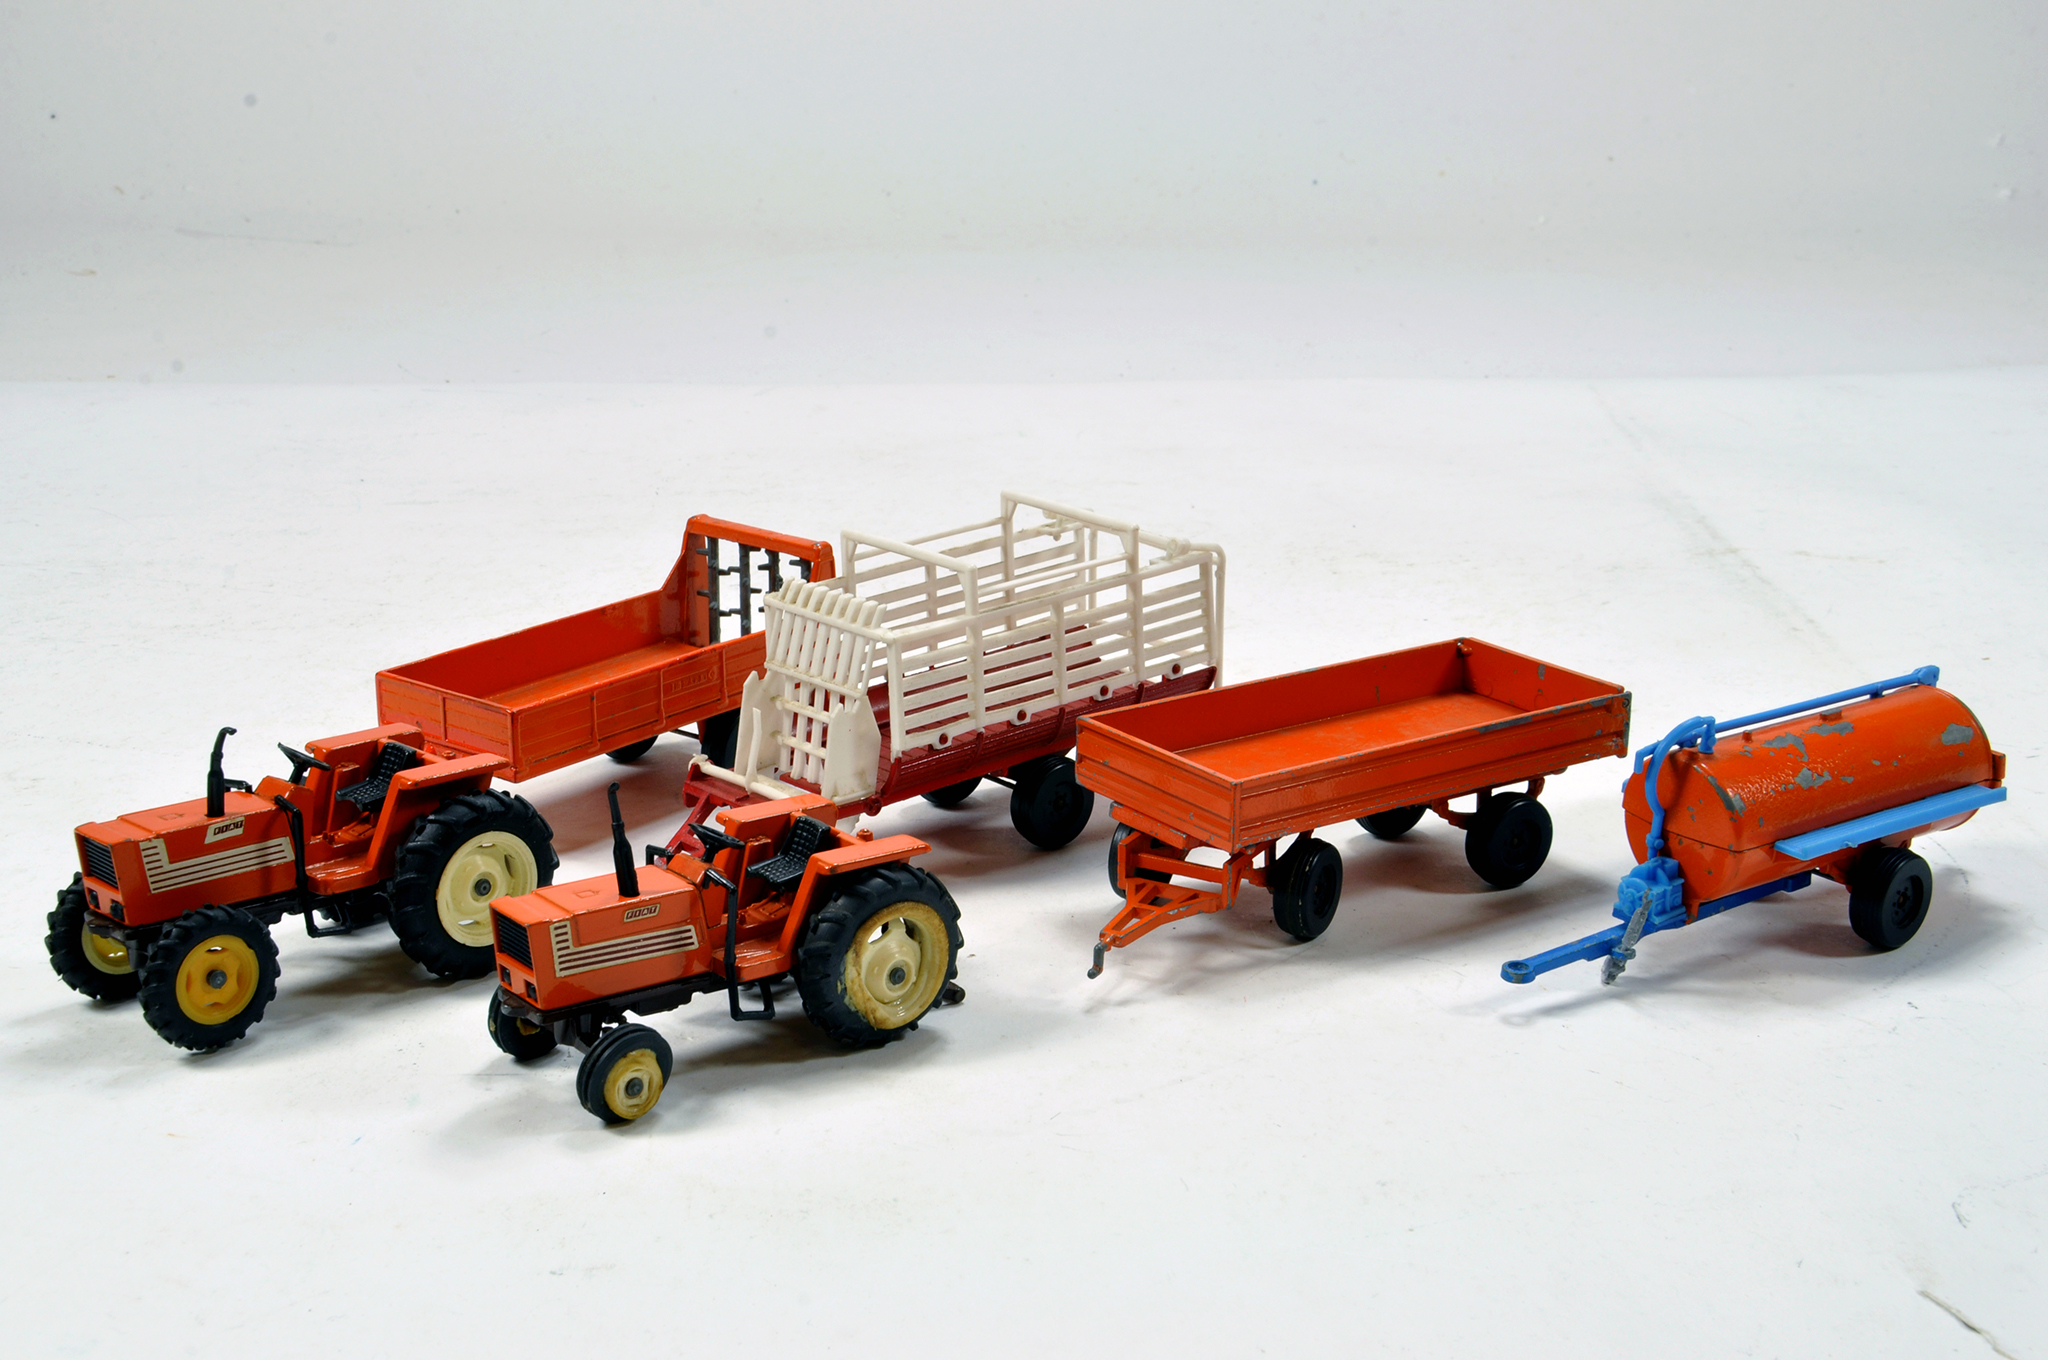 A group of Forma-Toys 1/43 Farm Issues comprising Fiat Tractor and Implement combinations. Generally